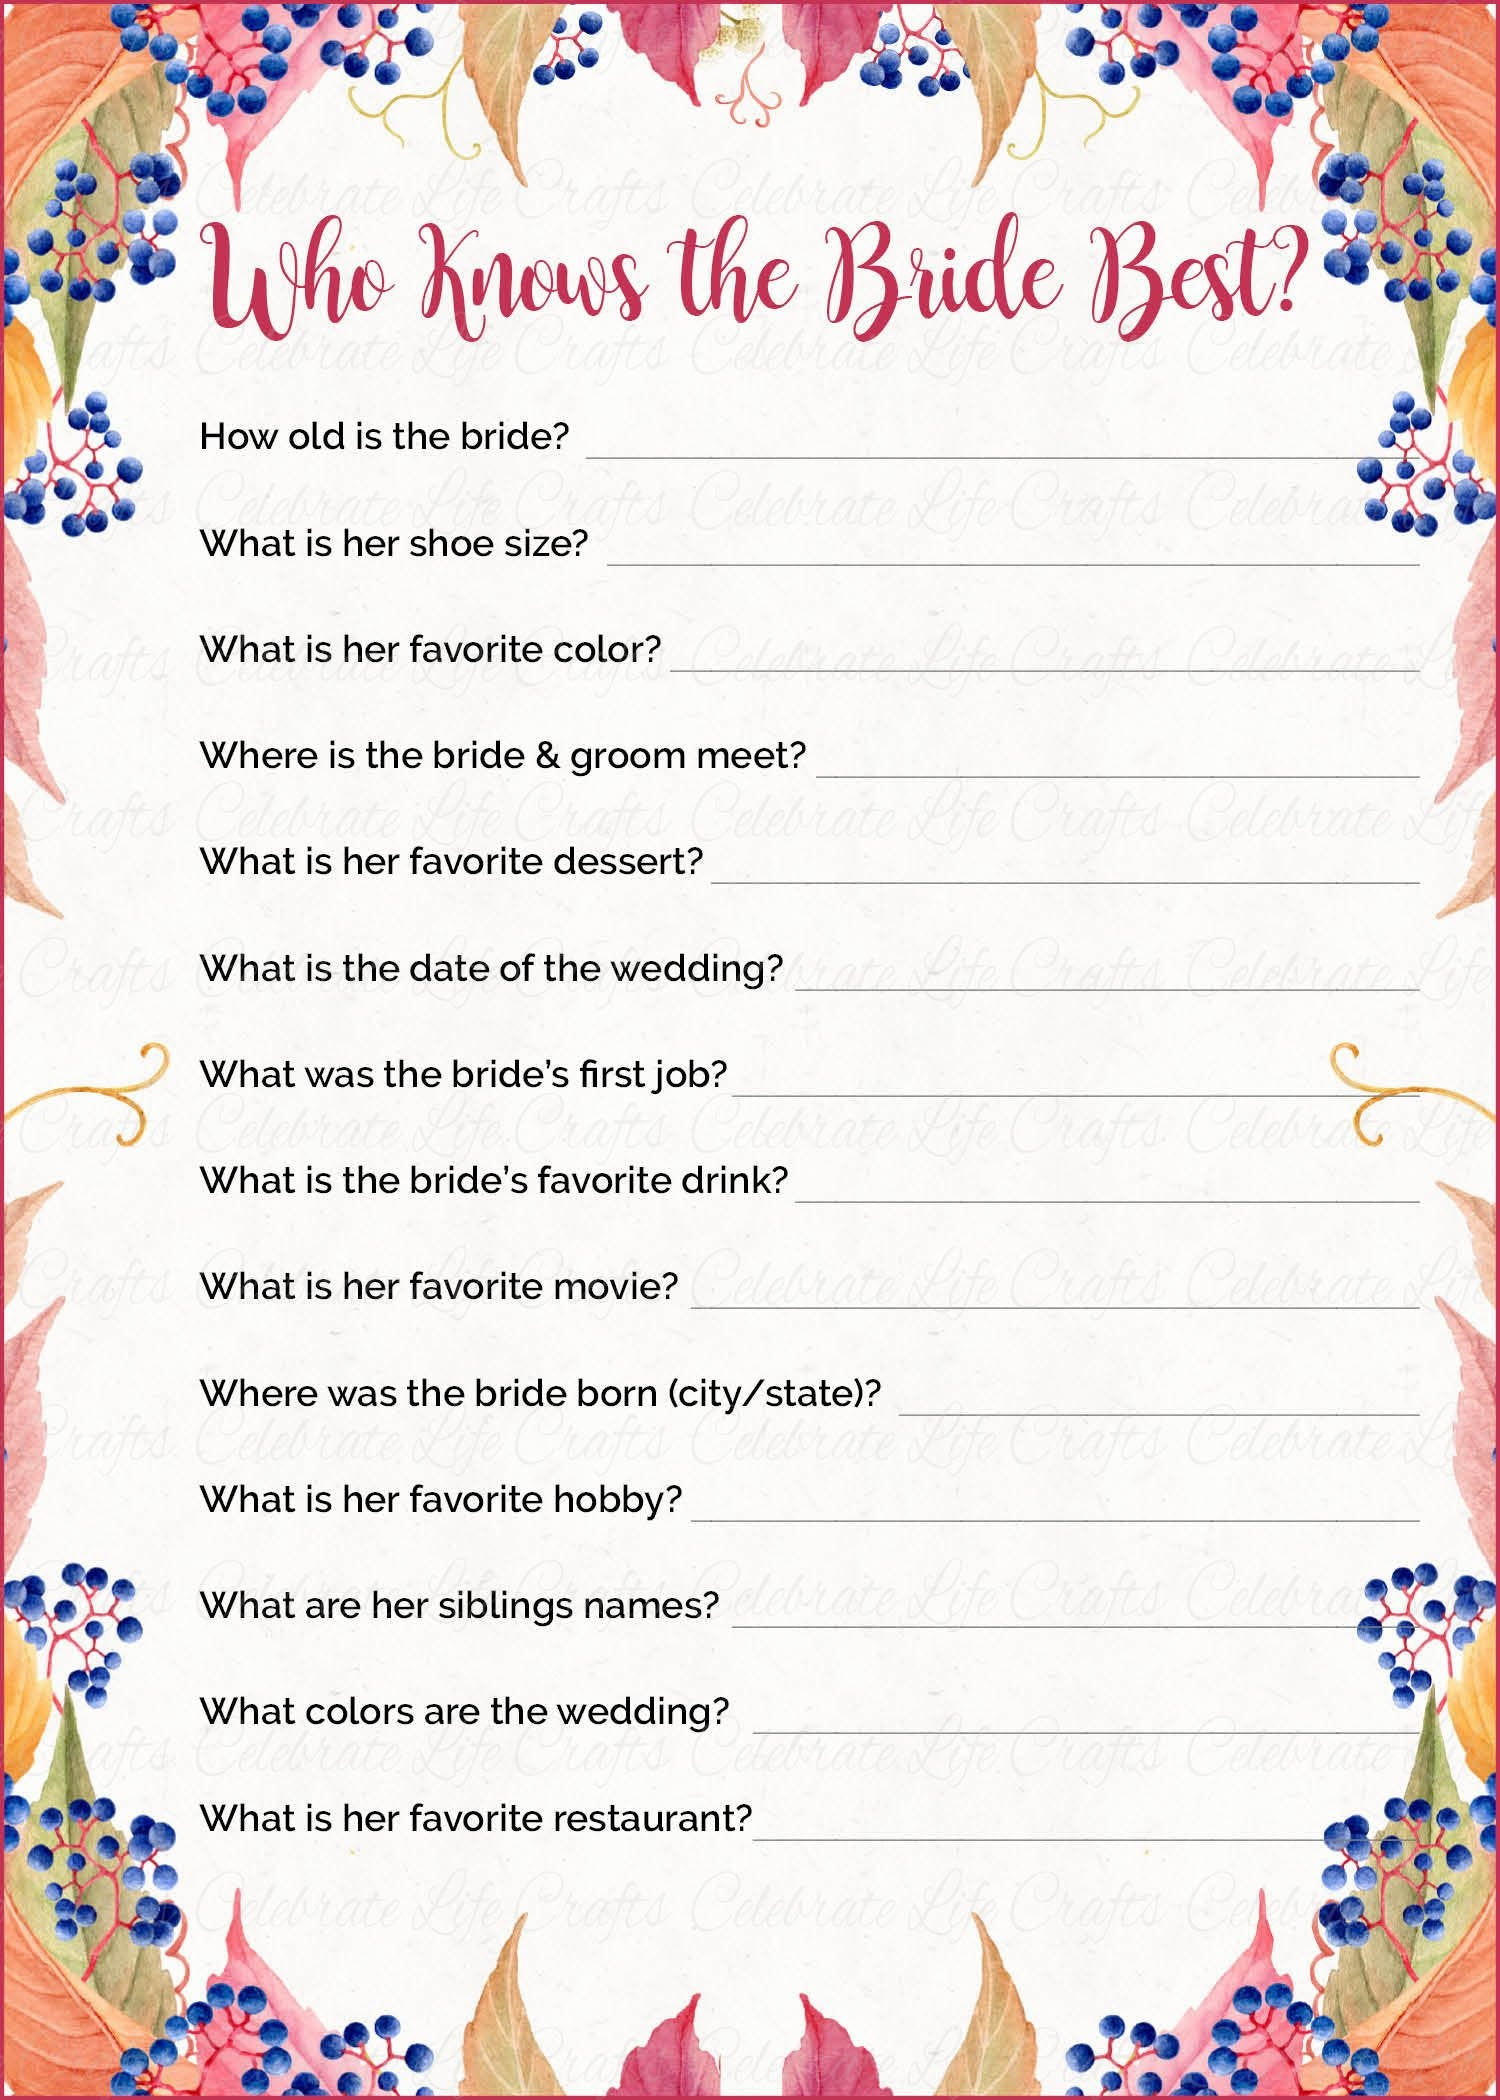 image relating to Bridal Shower Games Printable referred to as Who Appreciates the Bride Easiest Activity - PRINTABLE Obtain - Slipping in just Delight in Bridal Shower Match - BR1006